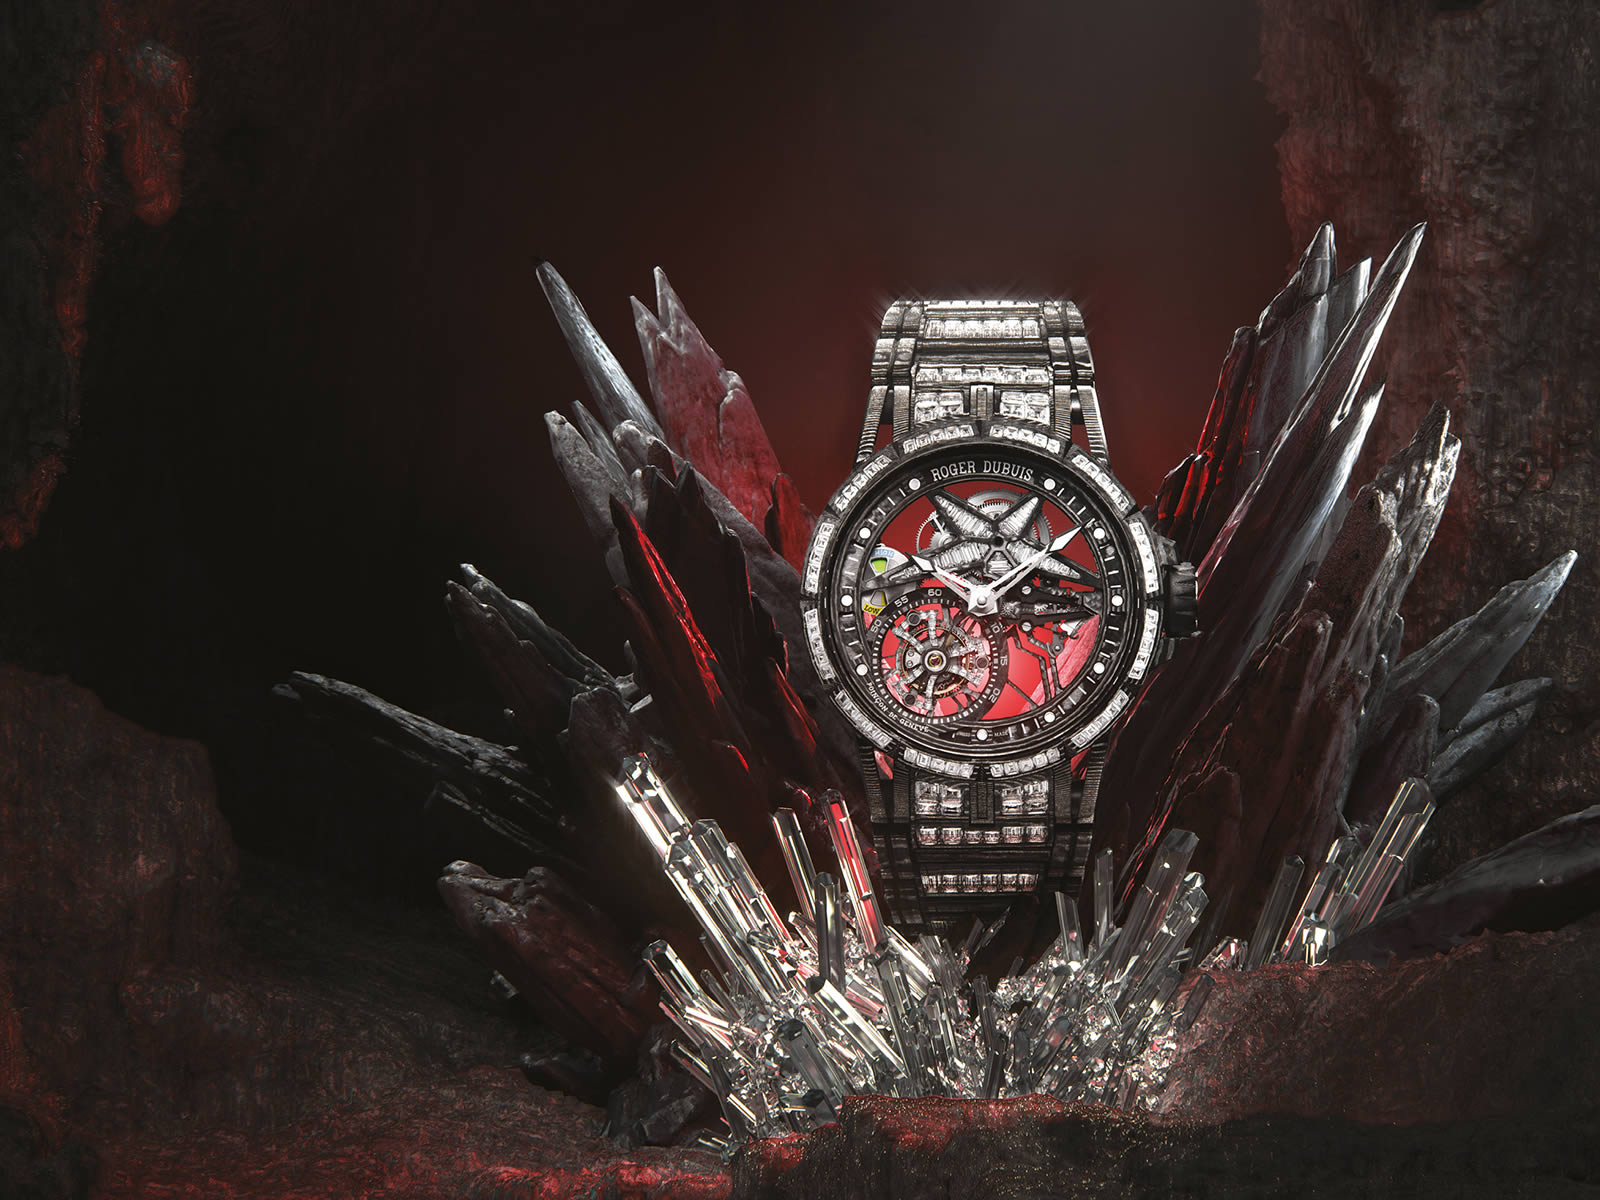 rddbex0675-roger-dubuis-excalibur-spider-ultimate-carbon-3-.jpg